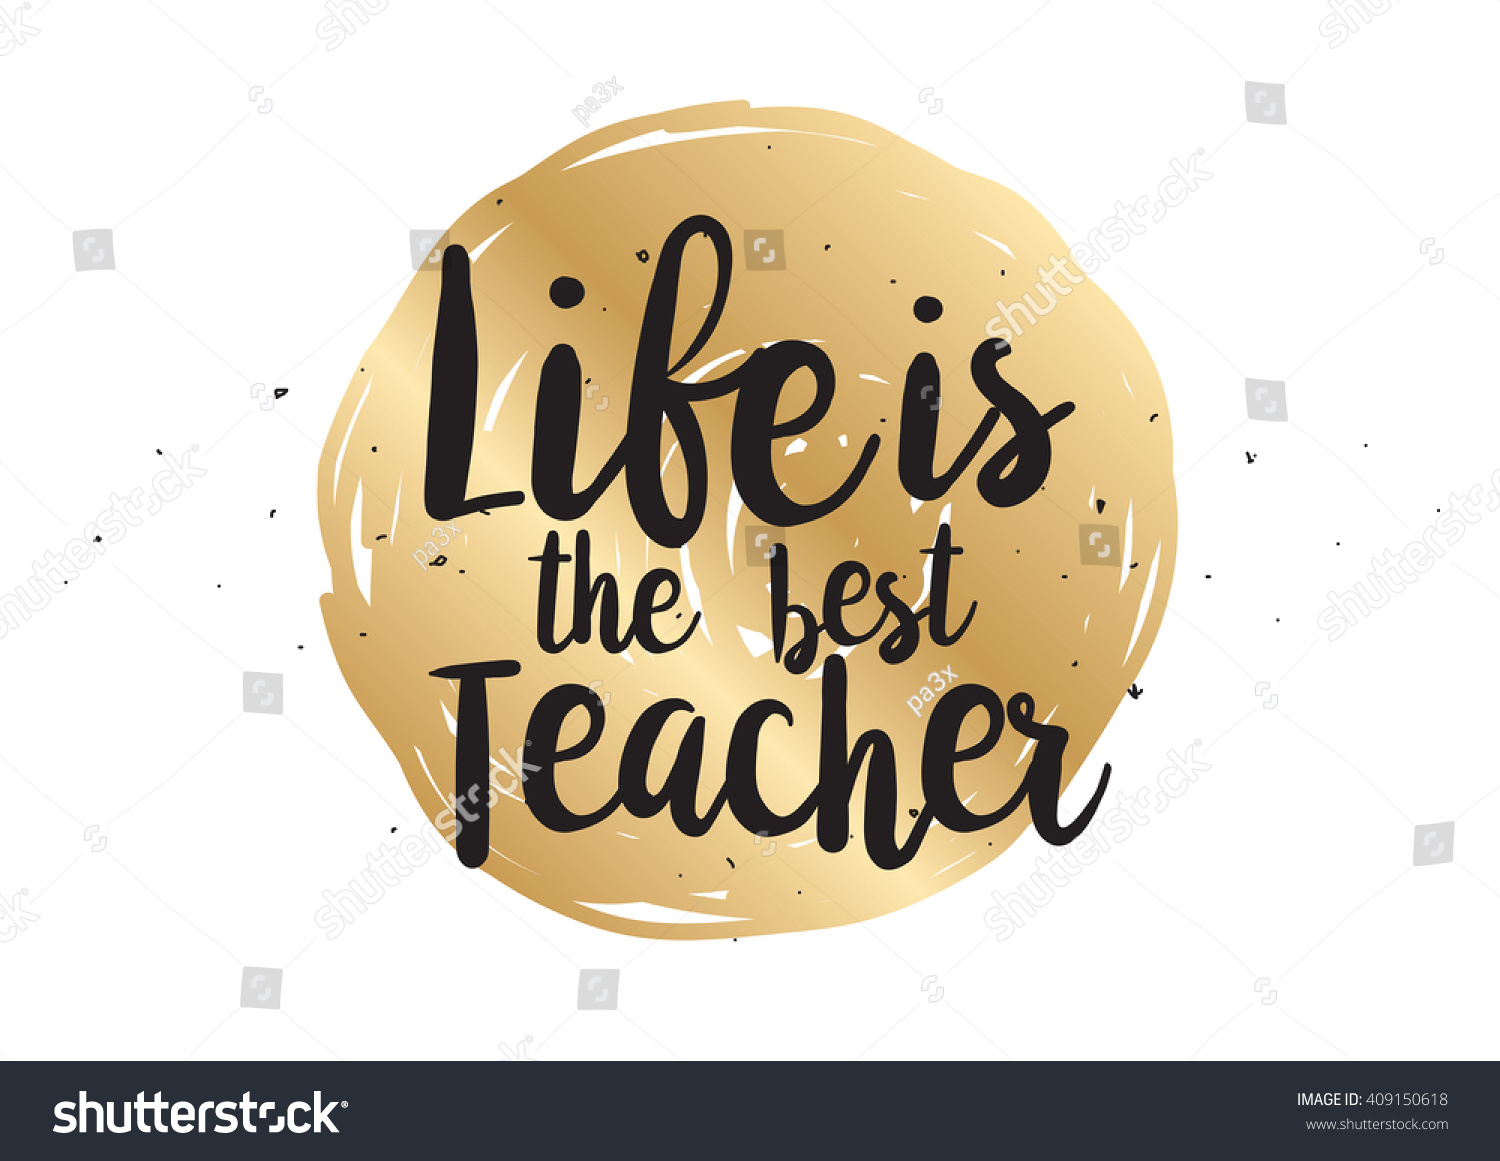 Life best teacher philosophical inspirational inscription stock life is the best teacher philosophical inspirational inscription greeting card with quote calligraphy kristyandbryce Images